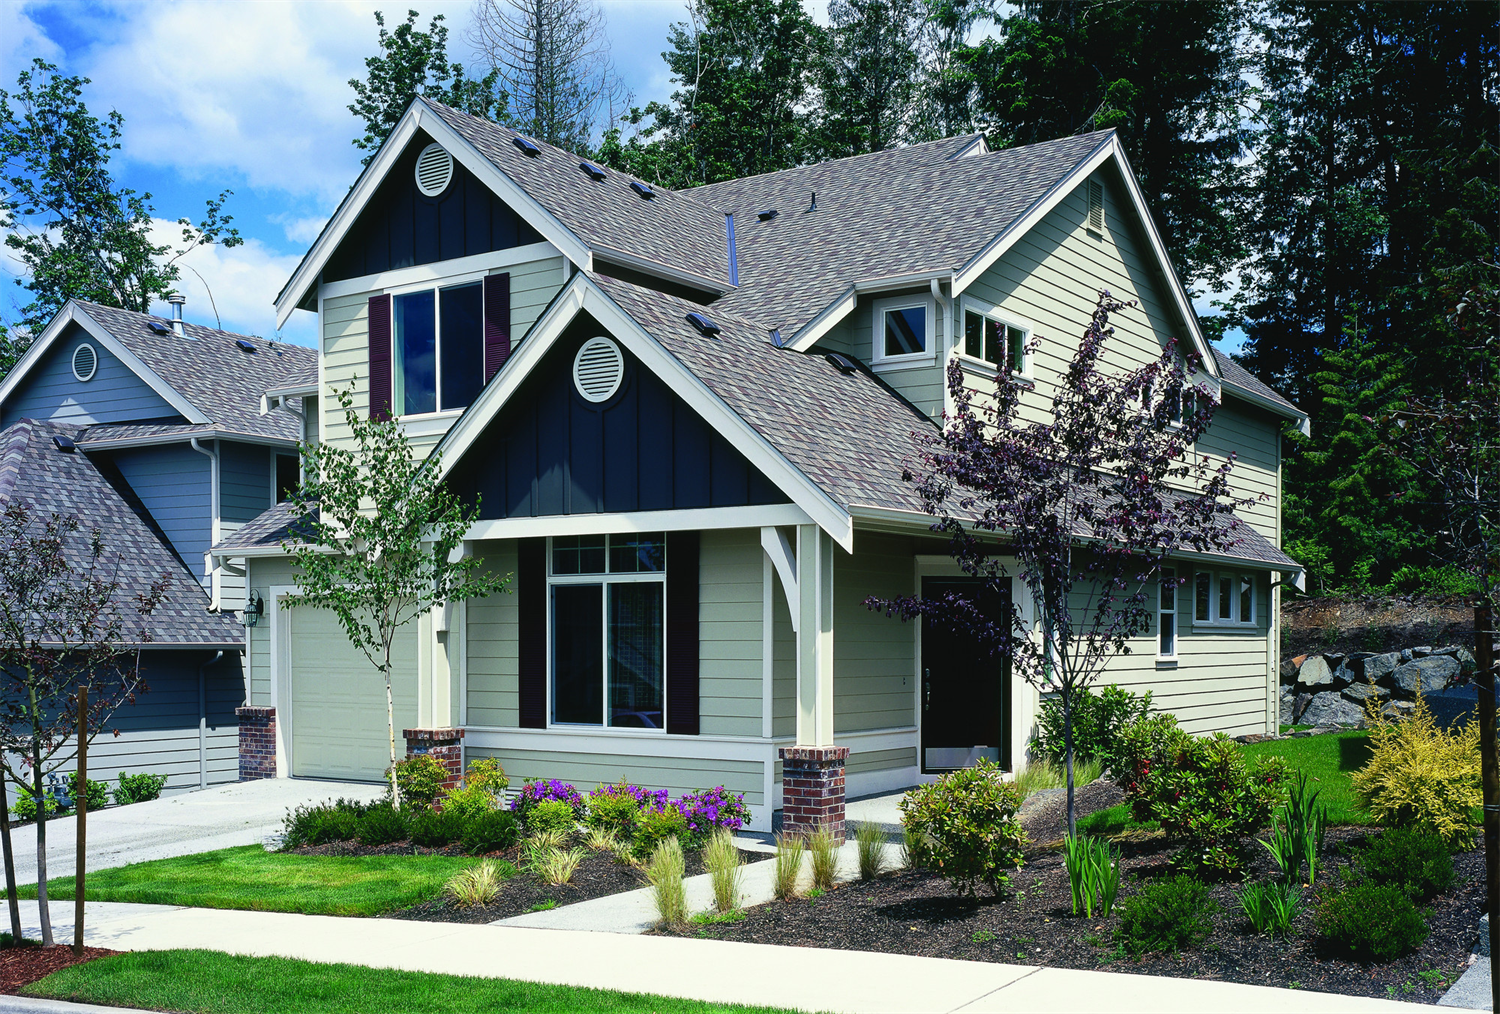 scottish-home-improvement-james-hardie-siding-colorado